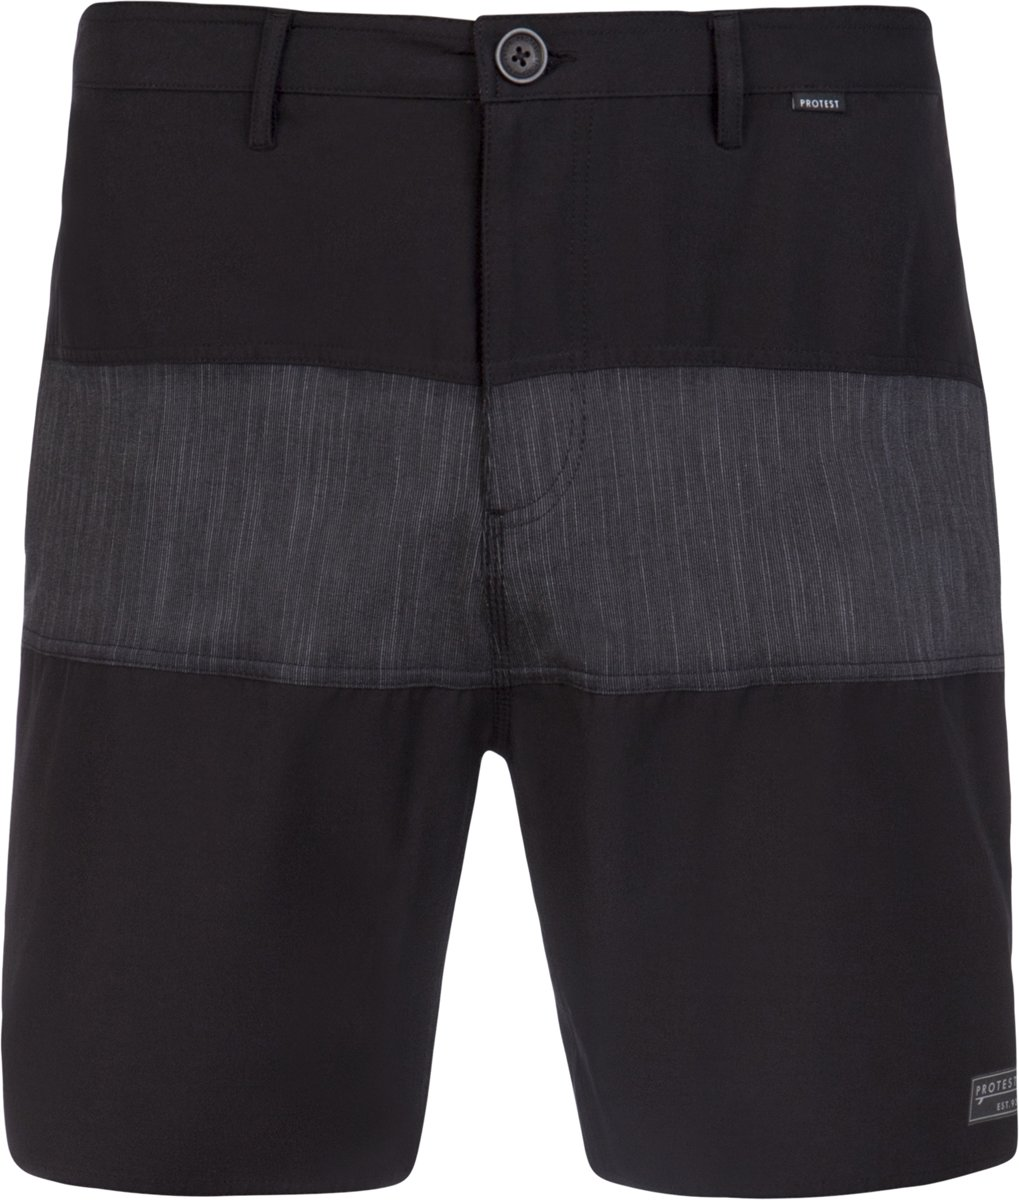 Protest NOGO Surfable Short Heren - True Black - Maat XL kopen